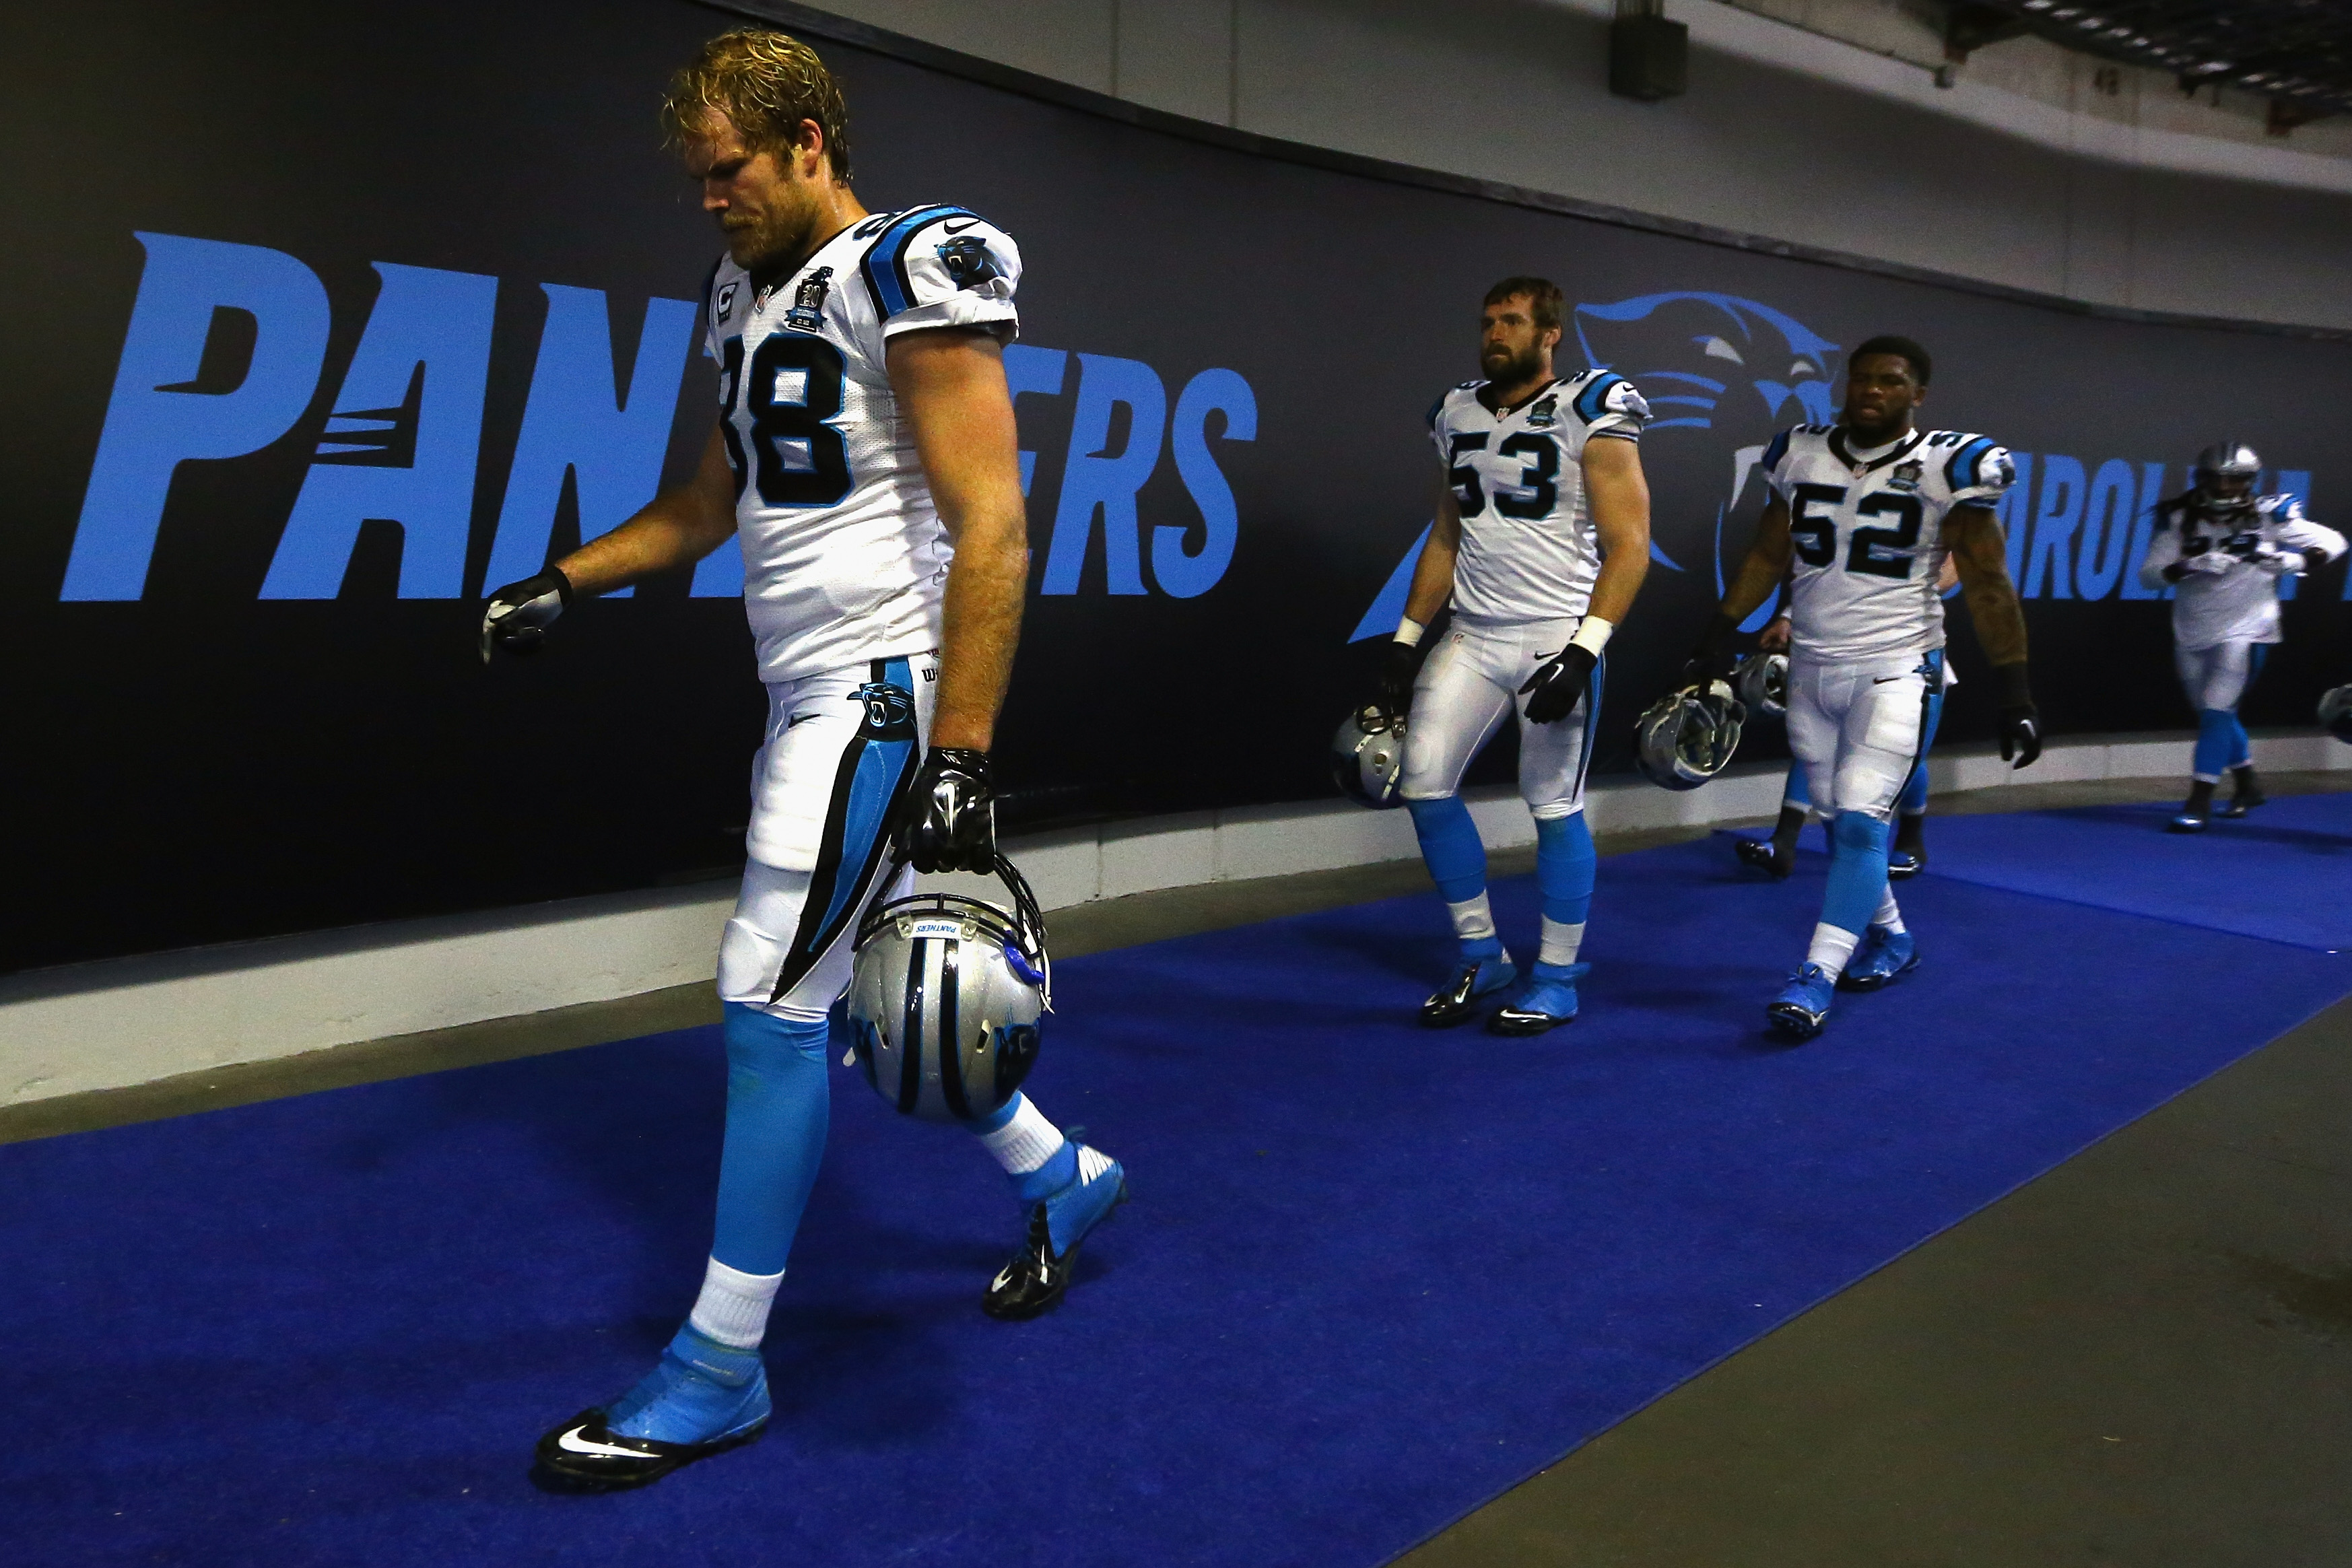 Greg Olsen #88, Ben Jacobs #53, and Kevin Reddick #52 of the Carolina Panthers return to the locker room at Bank of America Stadium.